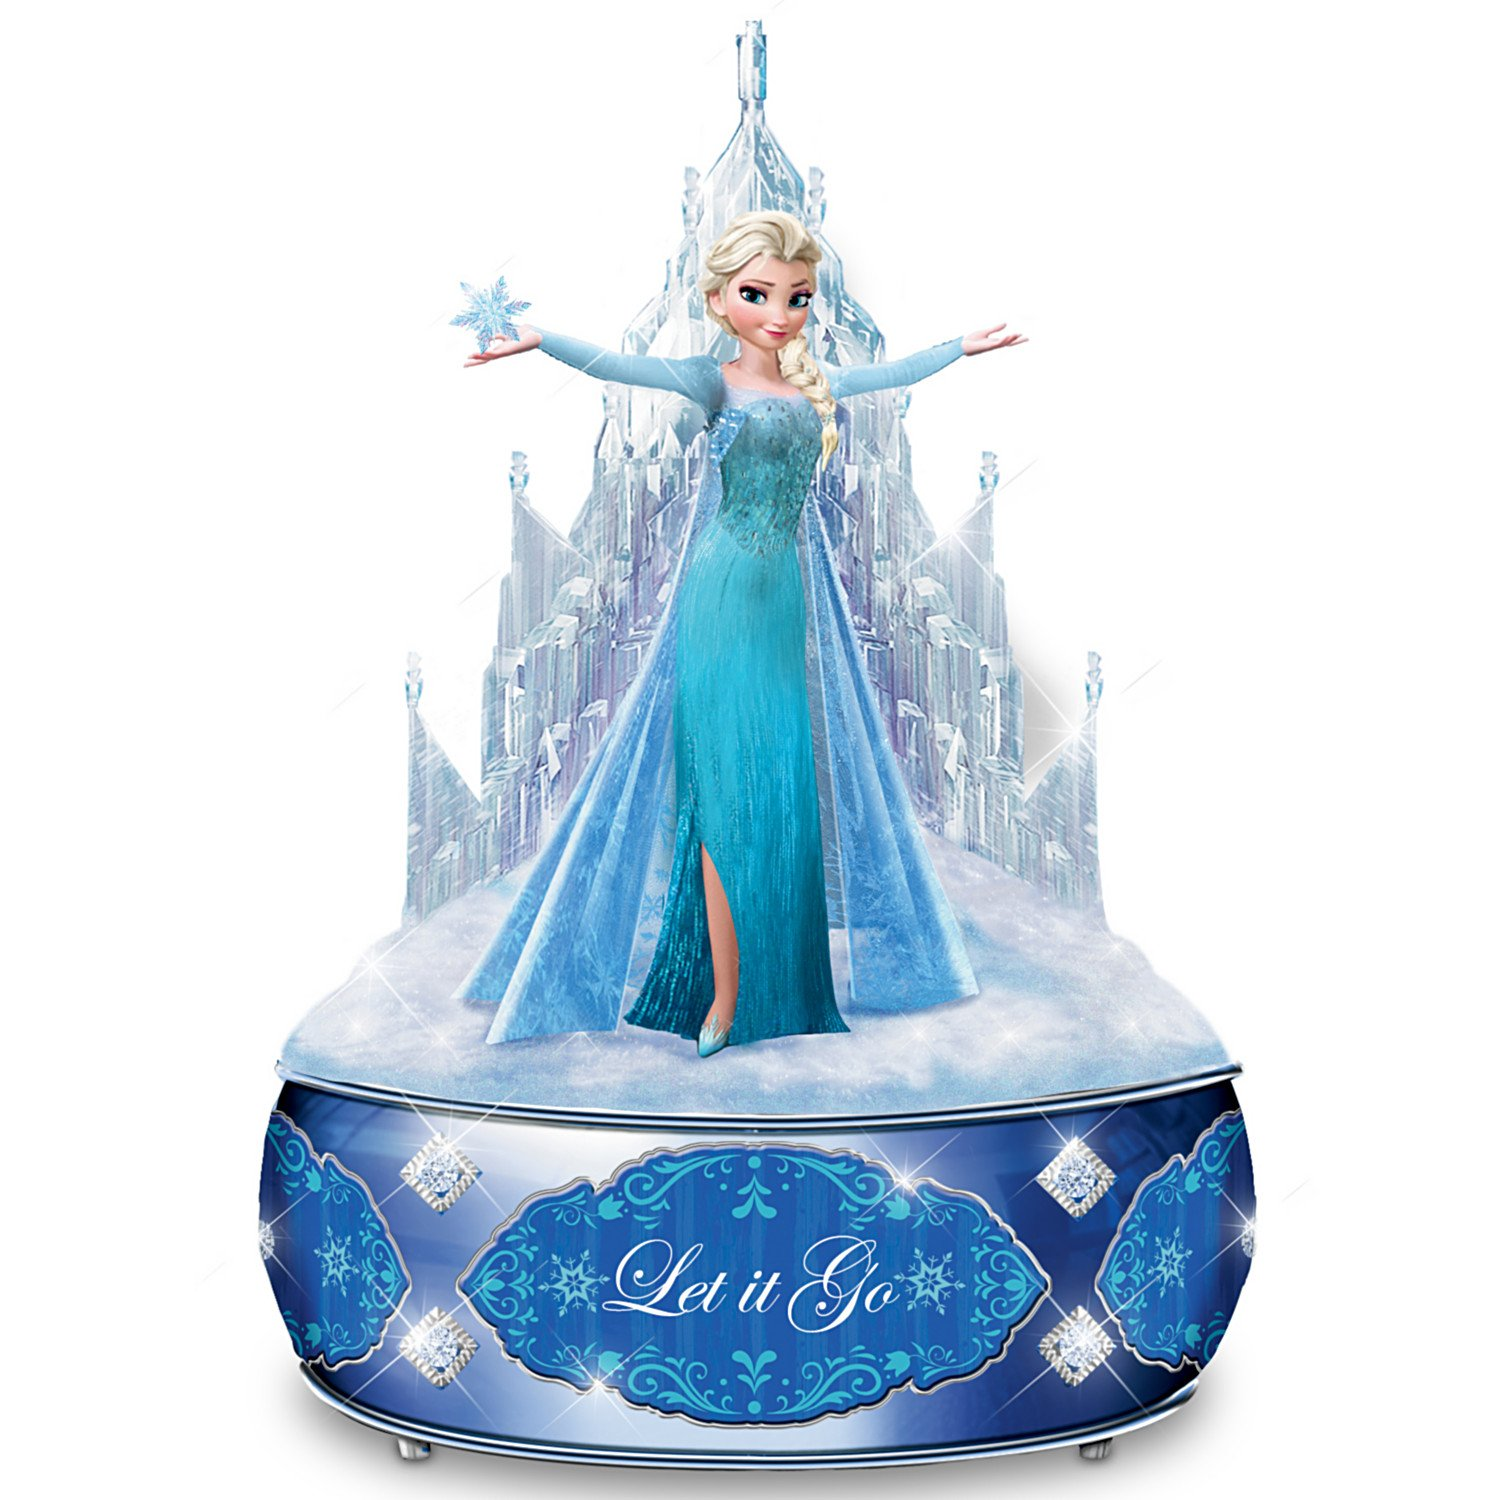 Disney FROZEN Let It Go Music Box With Elsa Sculpture And Crystalline Castle by The Bradford Exchange